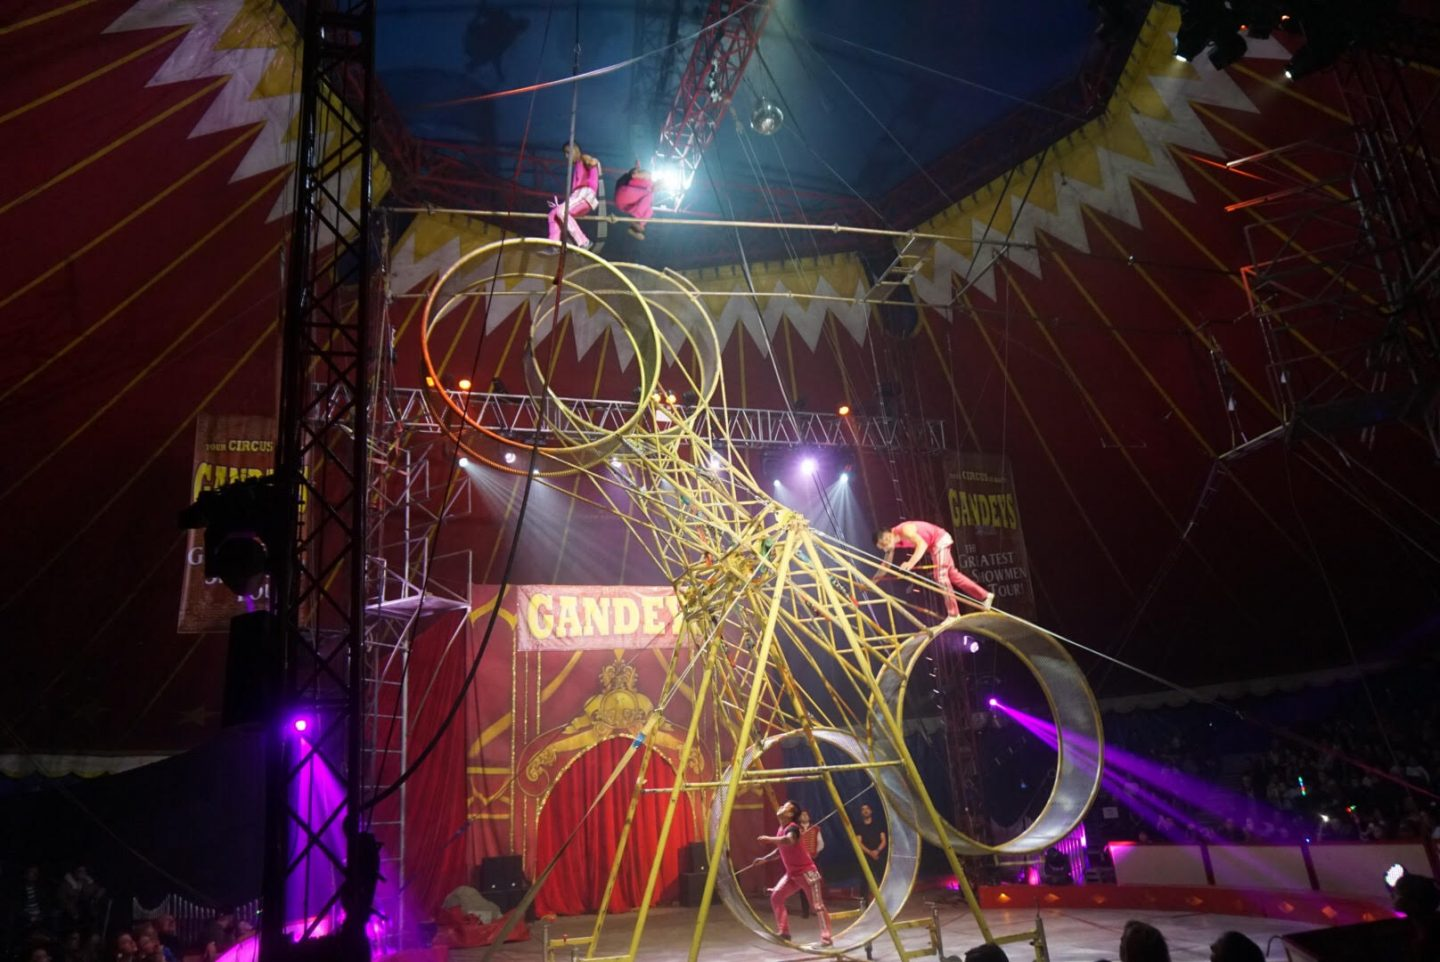 The greatest showman - gandeys circus UK